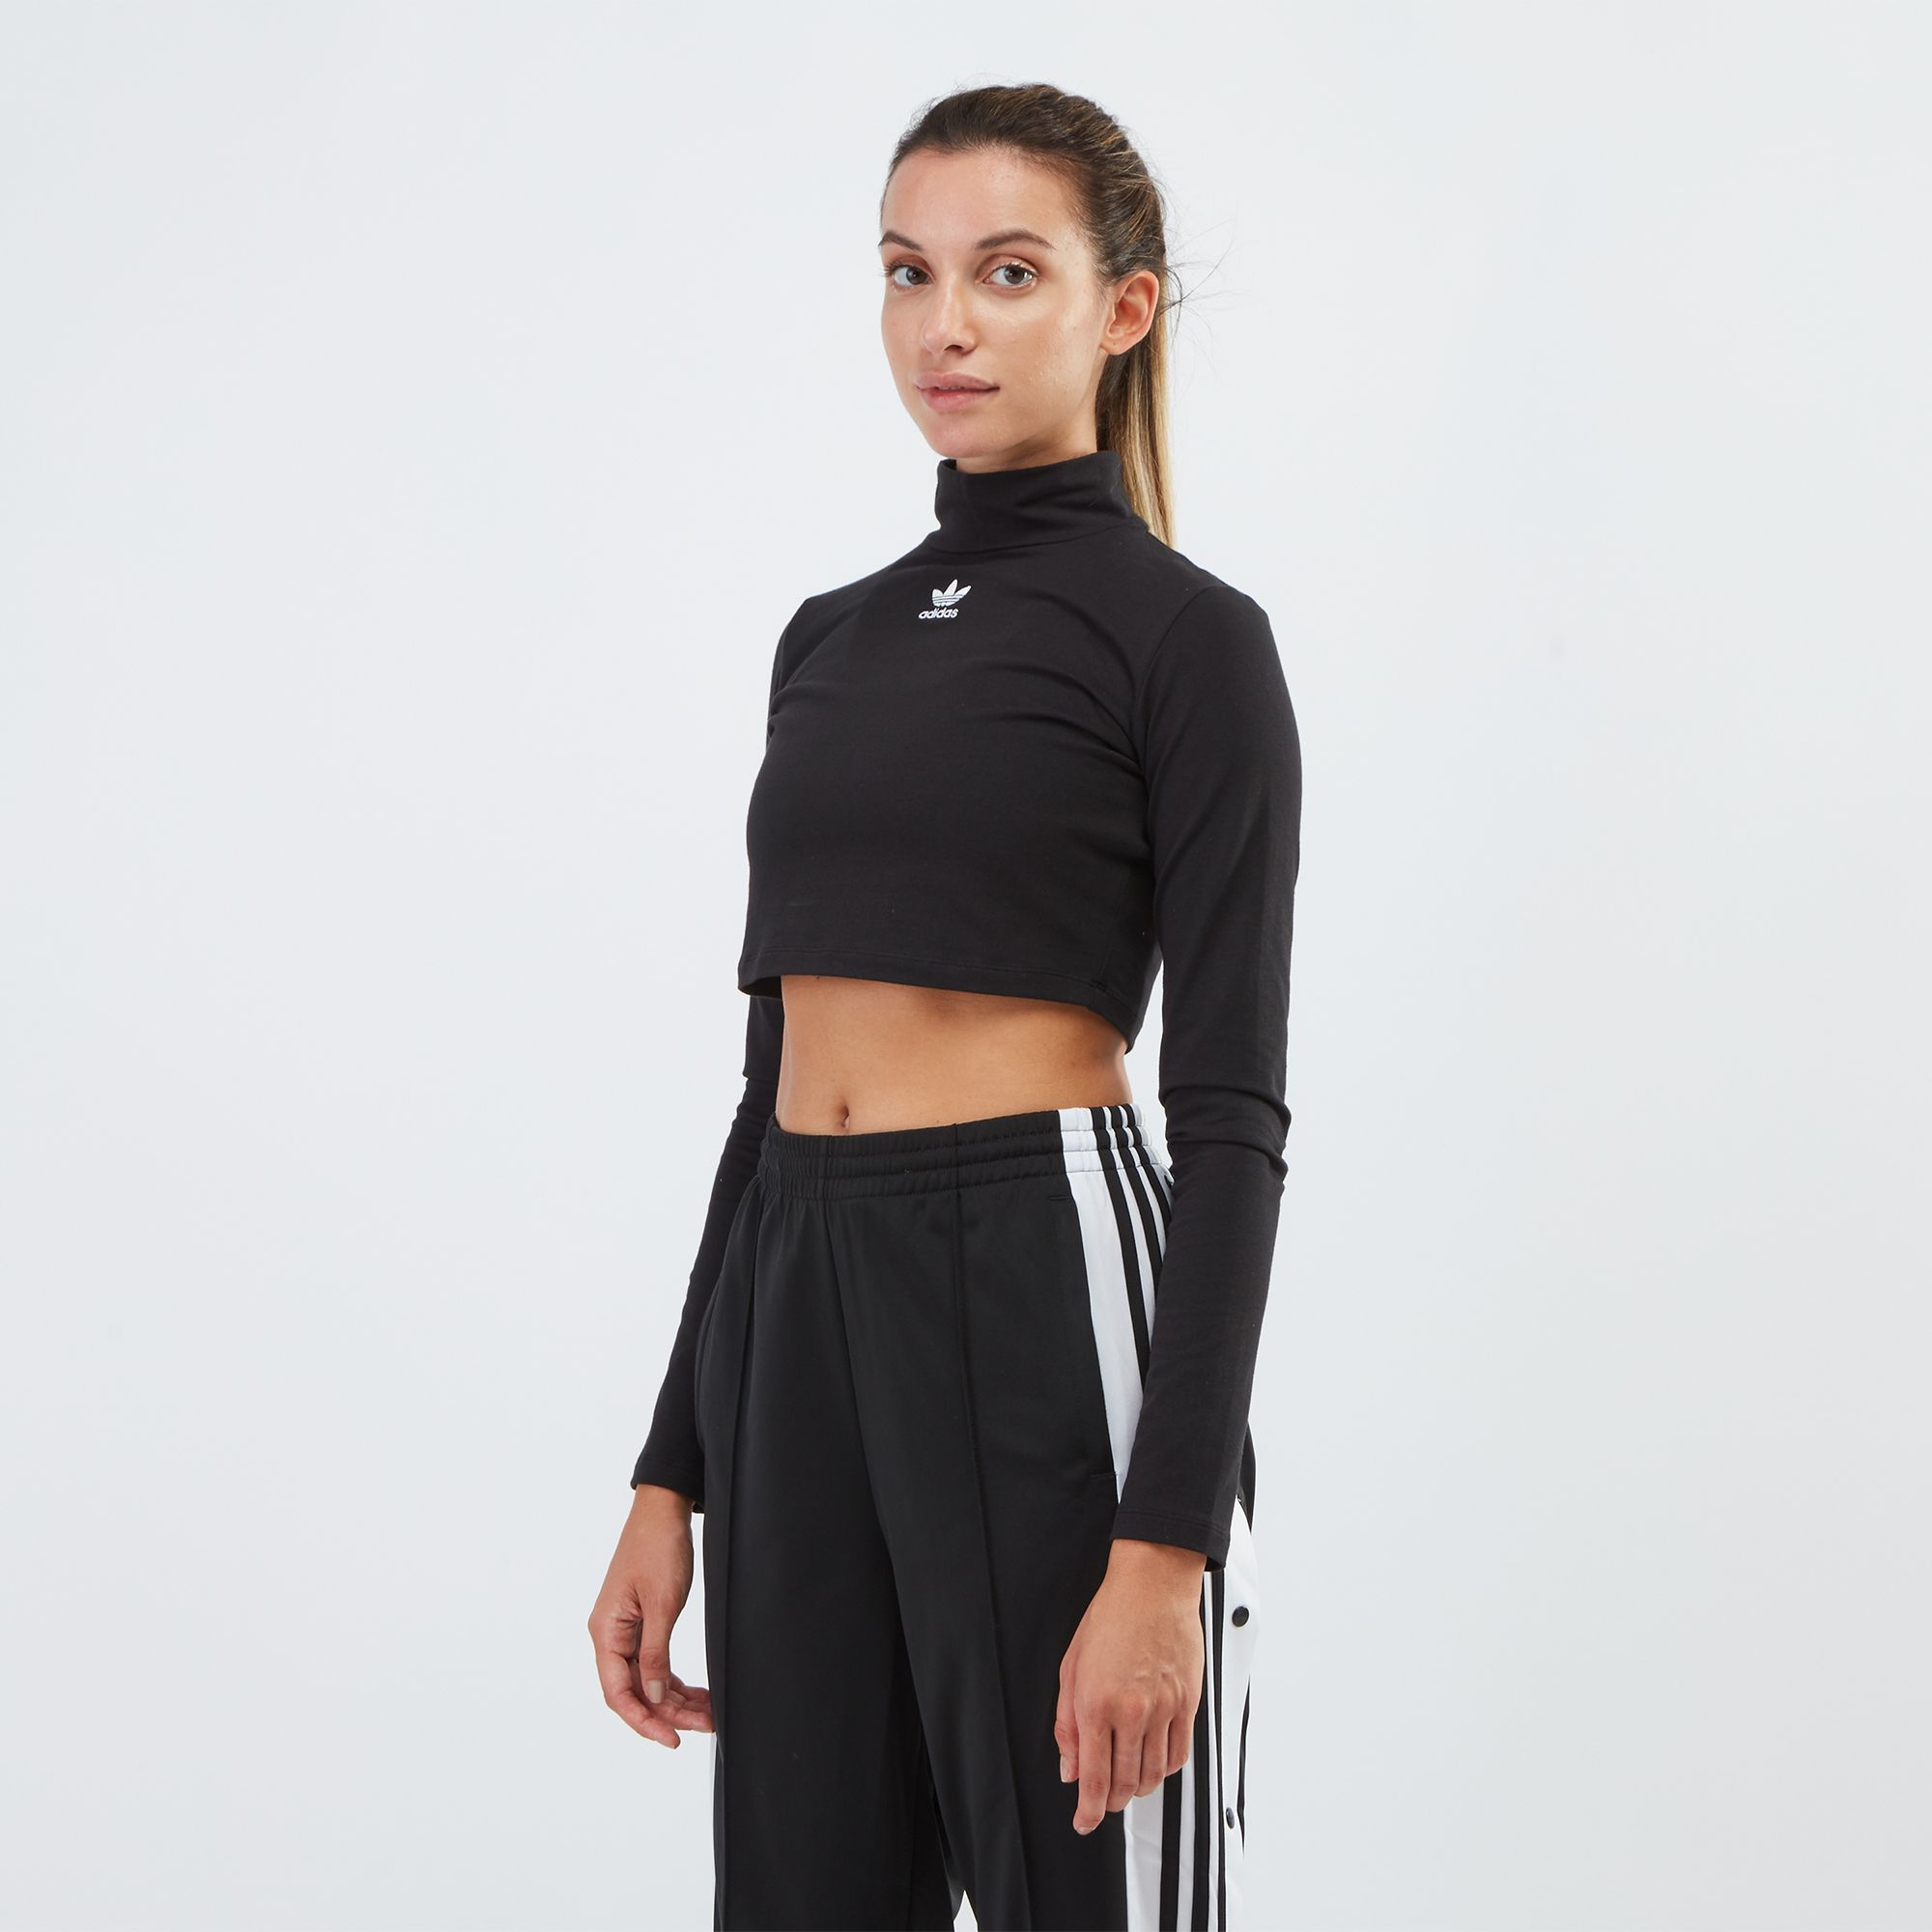 97ff109815e96 adidas Originals Styling Complements Long Sleeve Crop Top